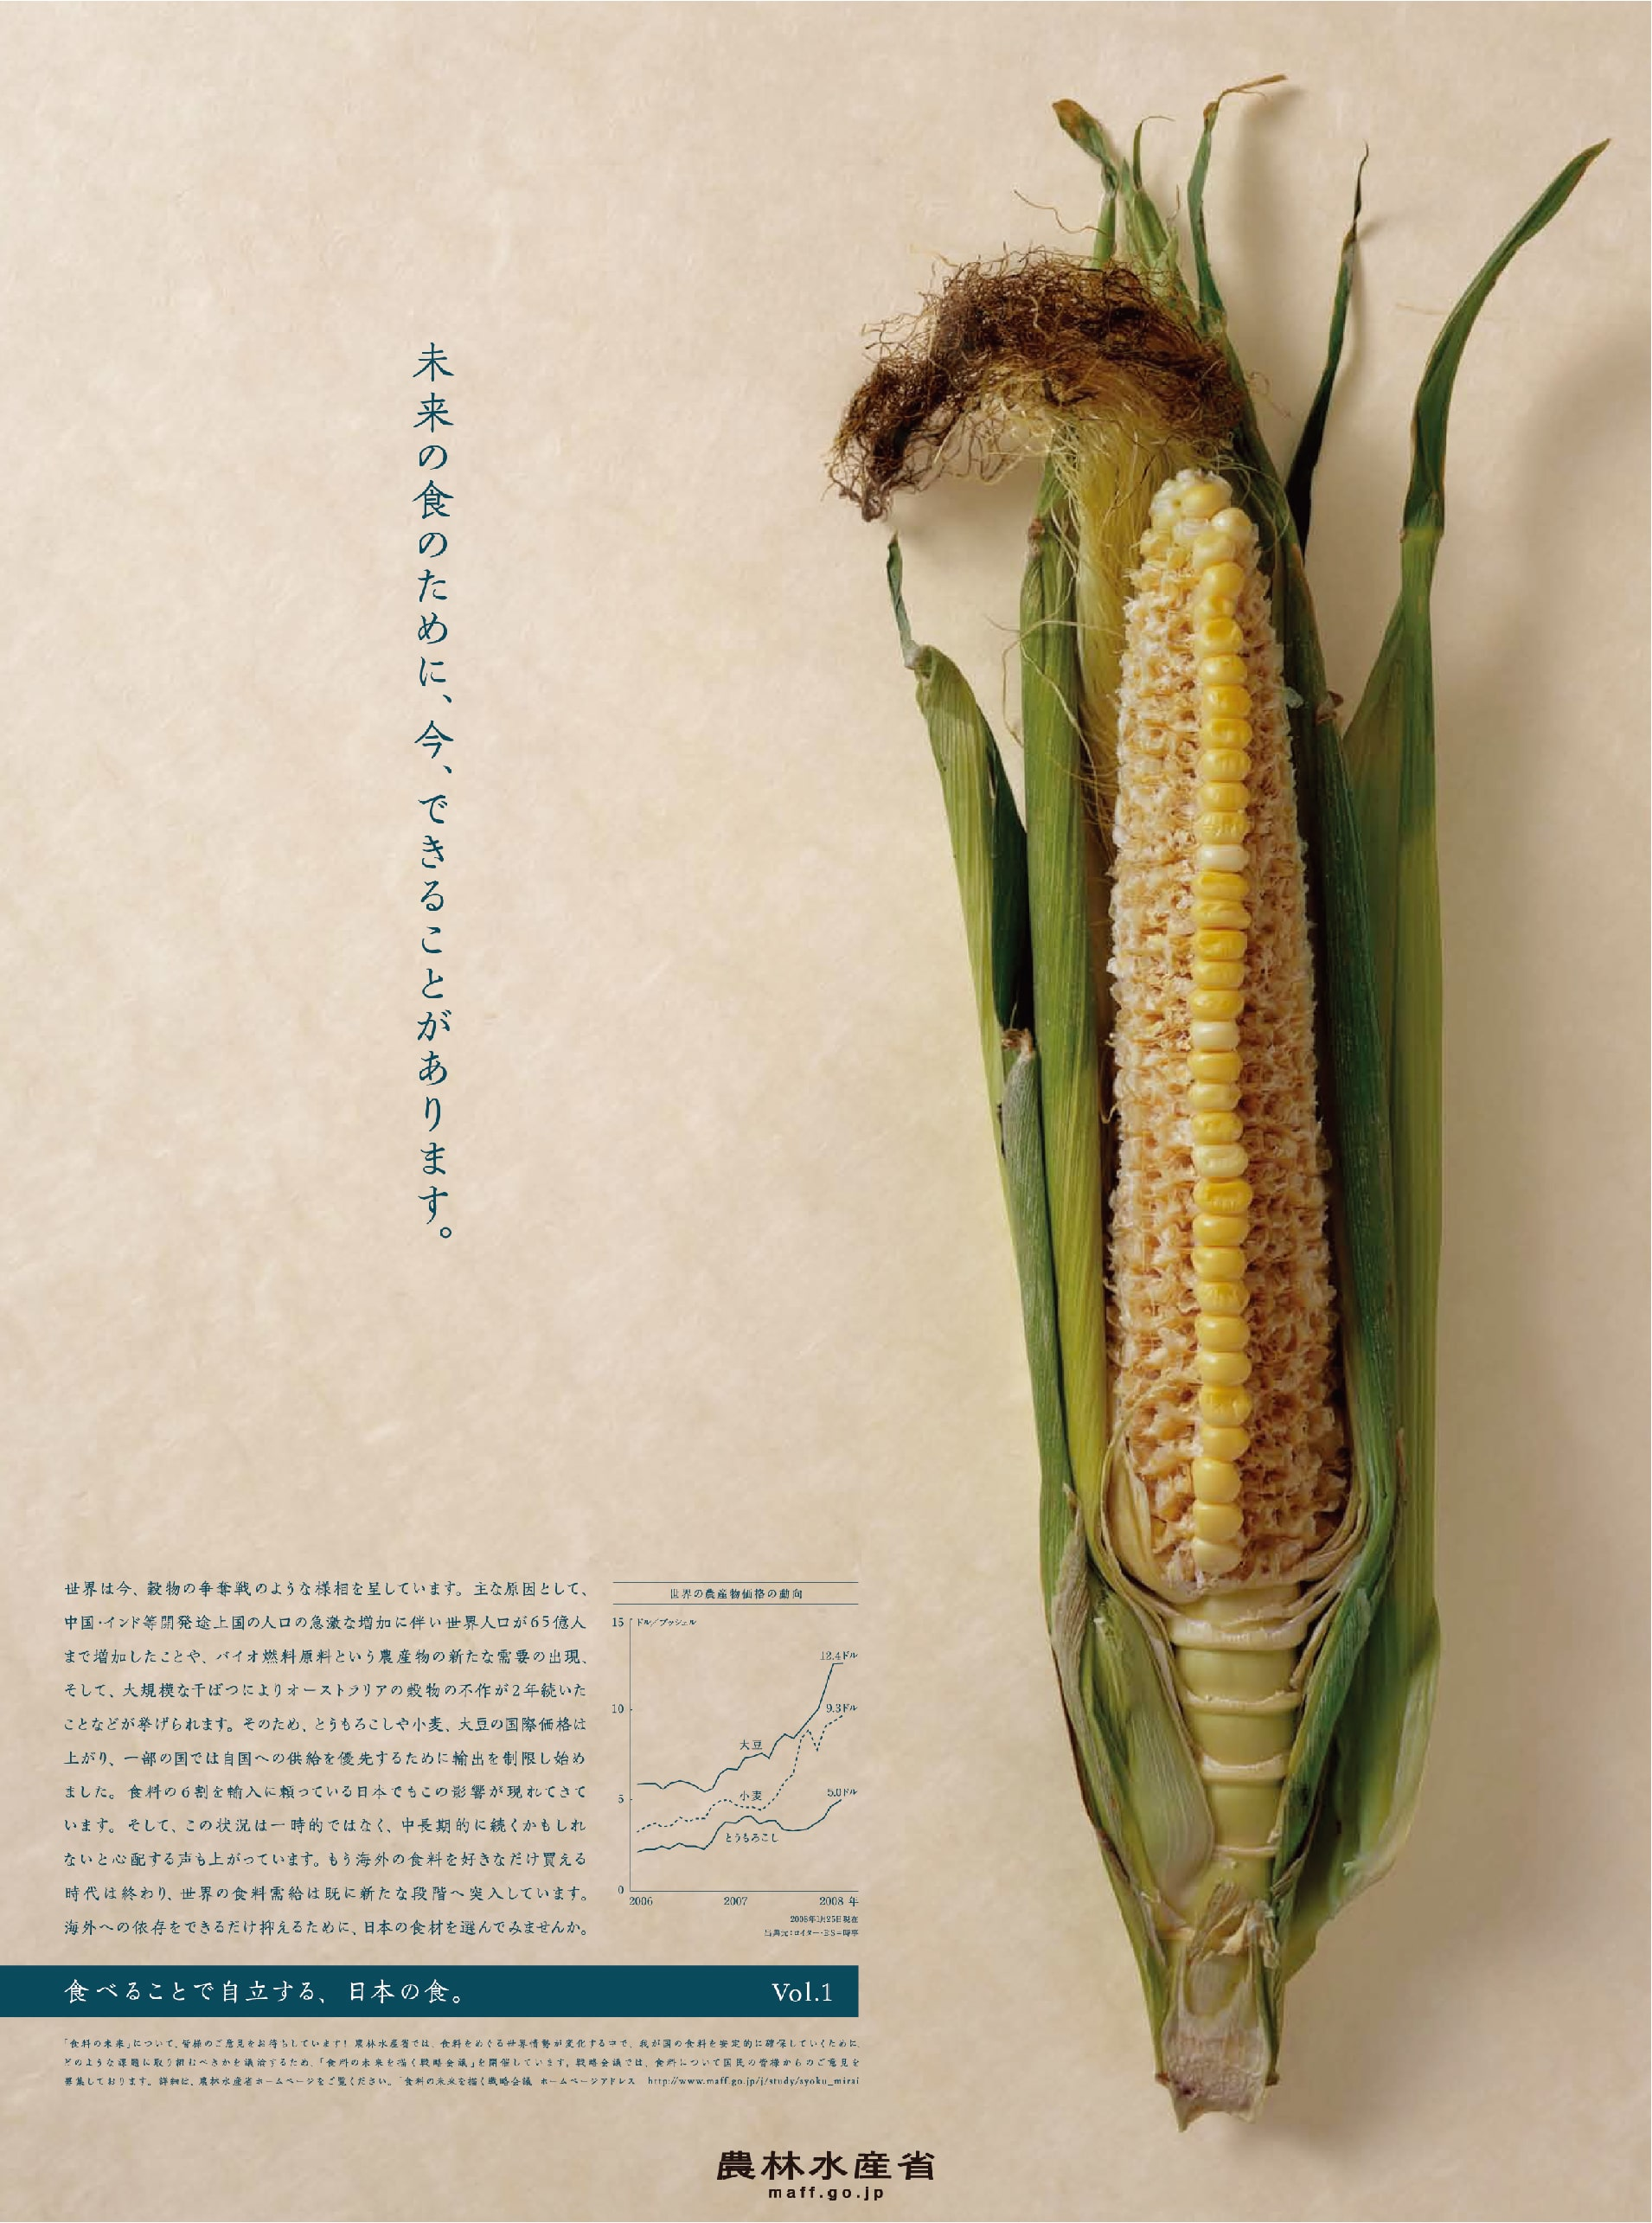 Ministry of Agriculture, Forestry and Fisheriesのポスター